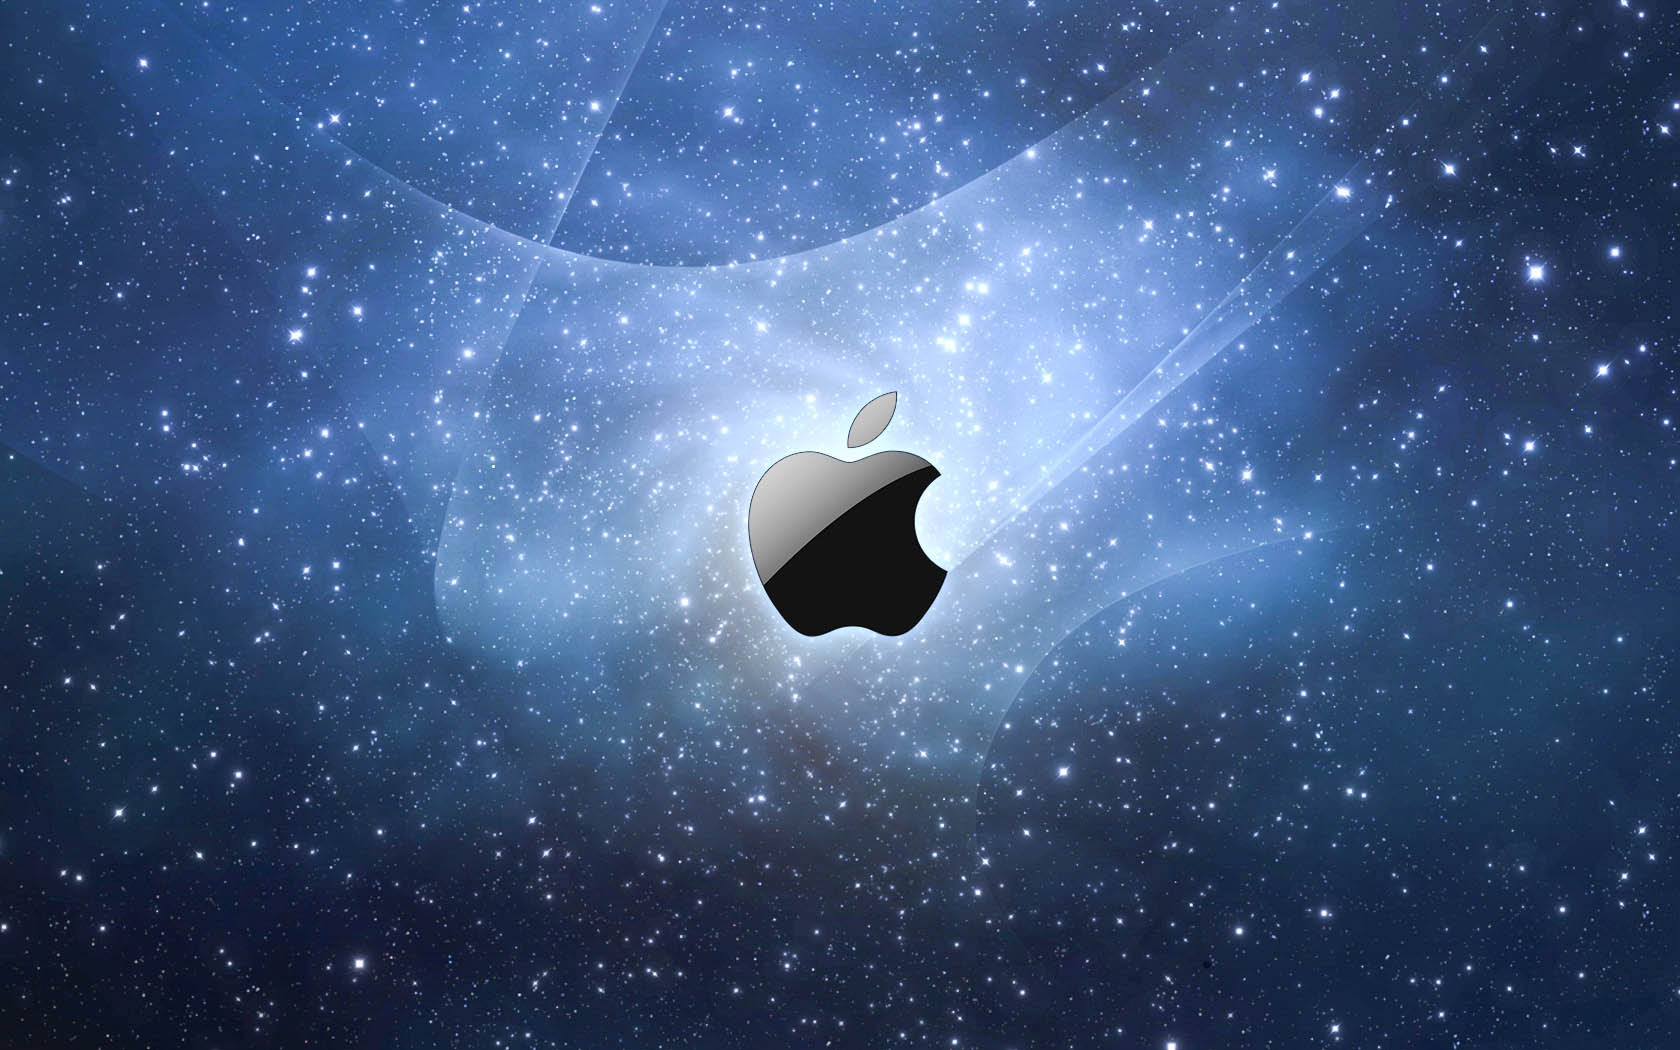 Apple High Definition Desktop Backgrounds  All HD Wallpapers